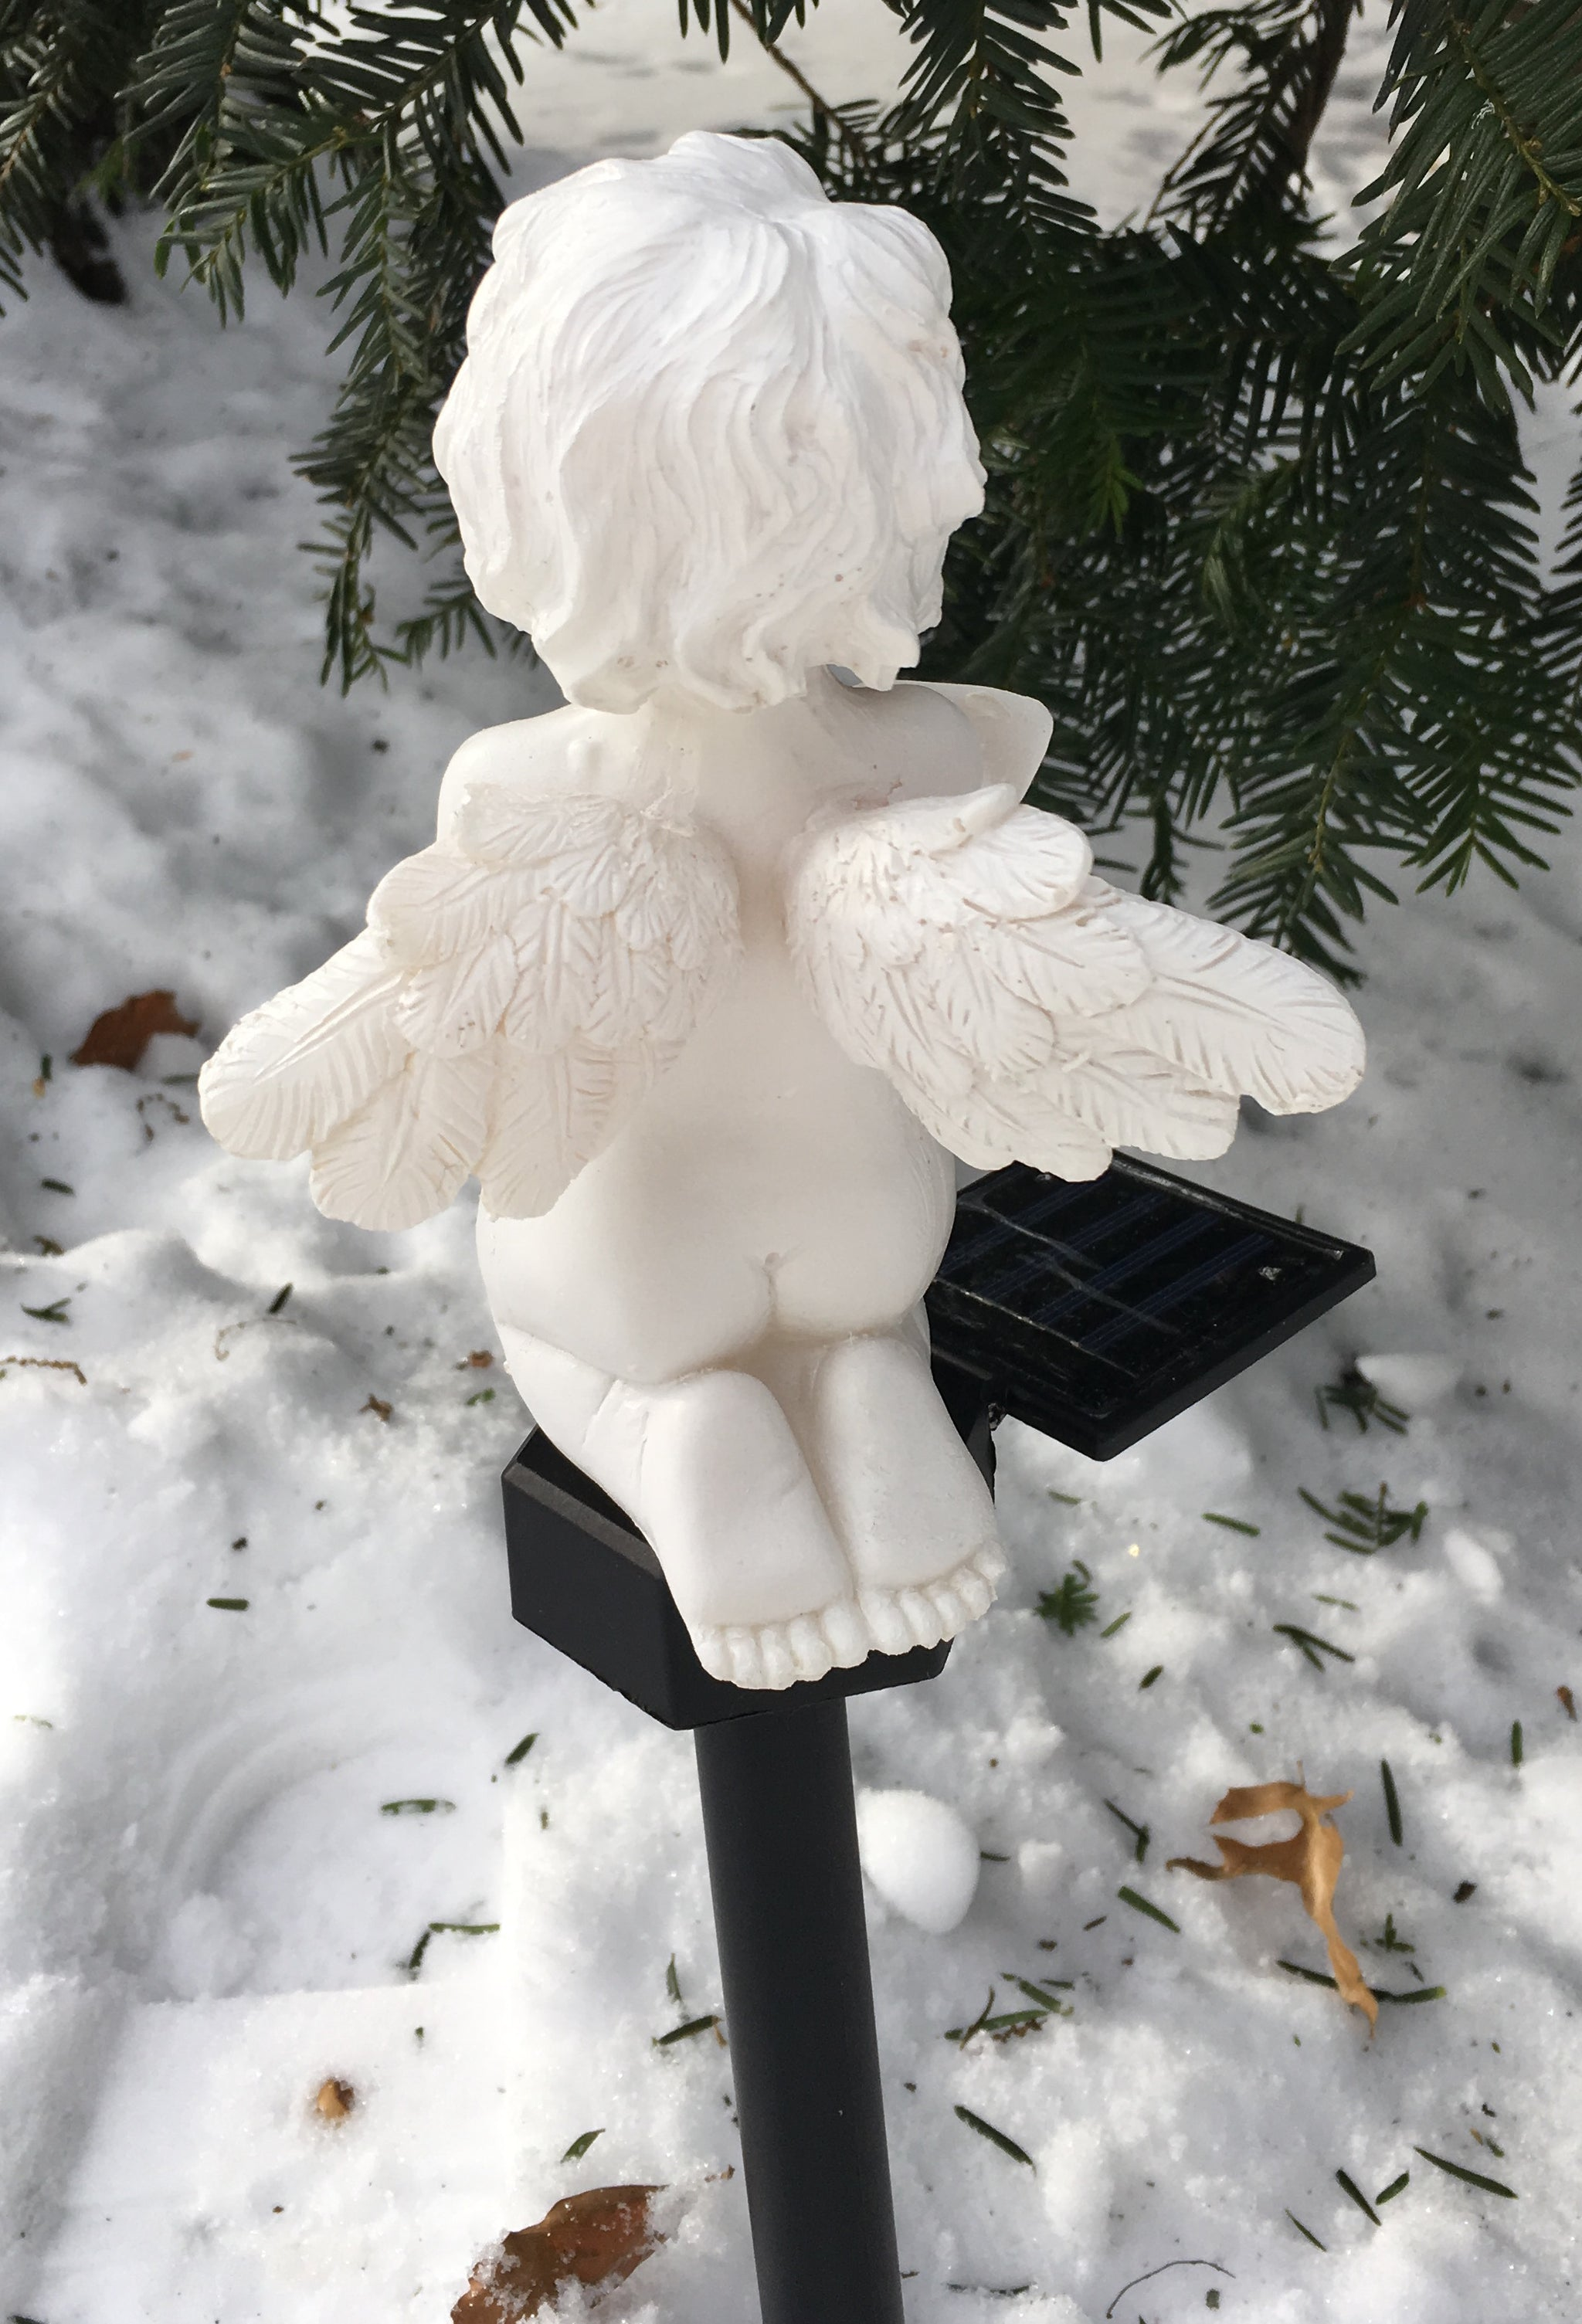 Solar Cherub Cupid Angel Light Garden Pathway Stake Outdoor Decor Landscape White LED Lamp